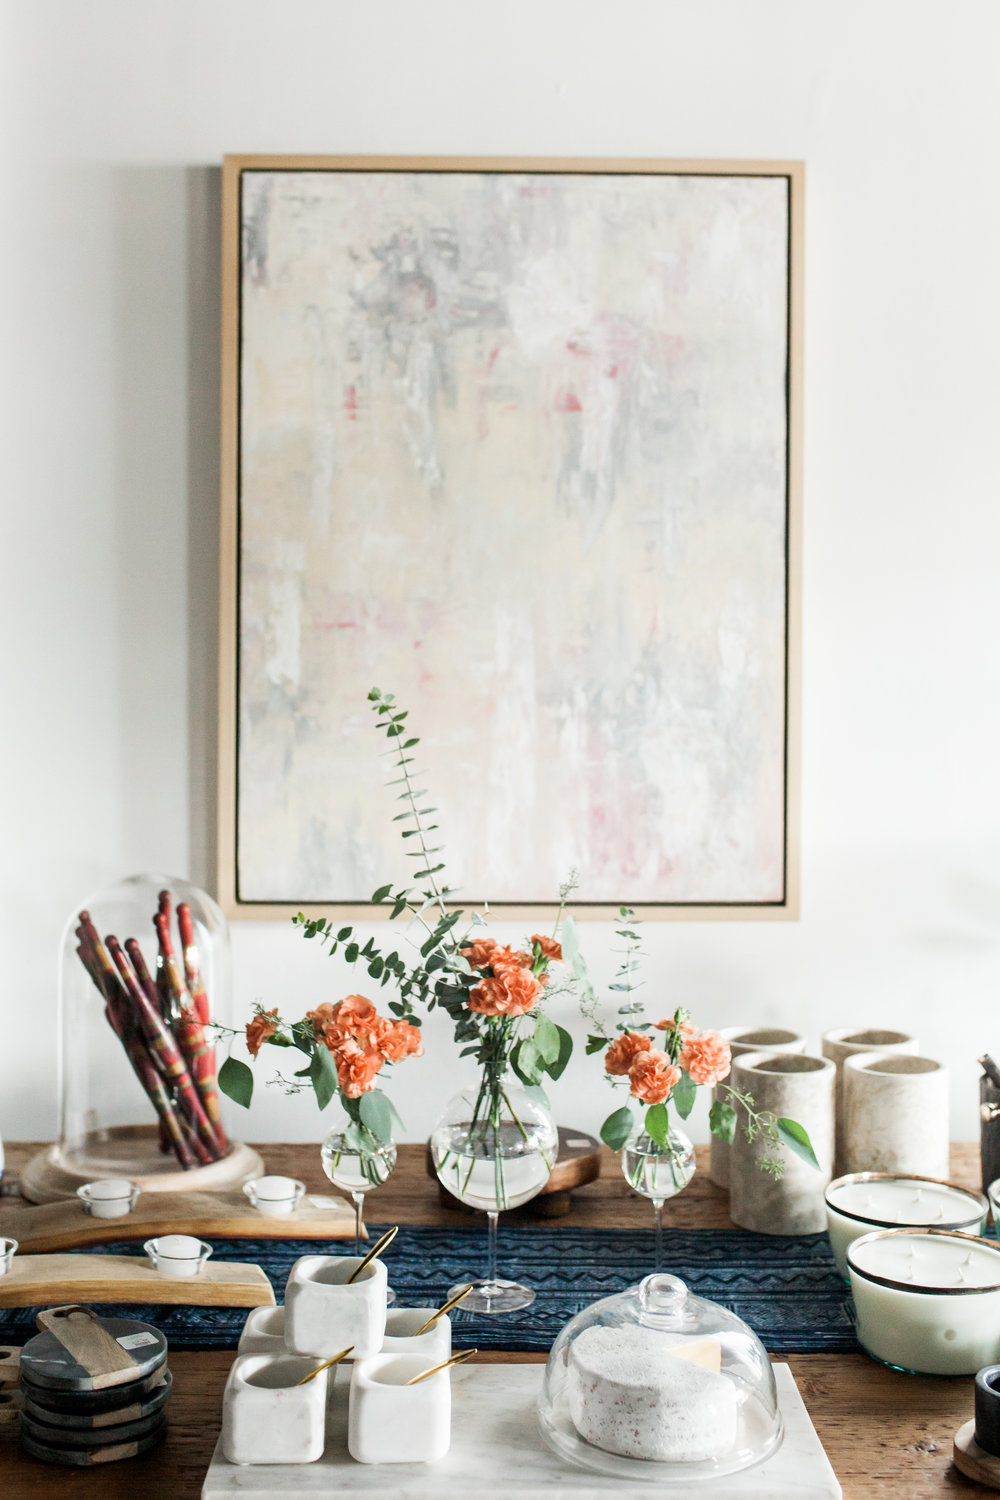 art decor and vase.jpg